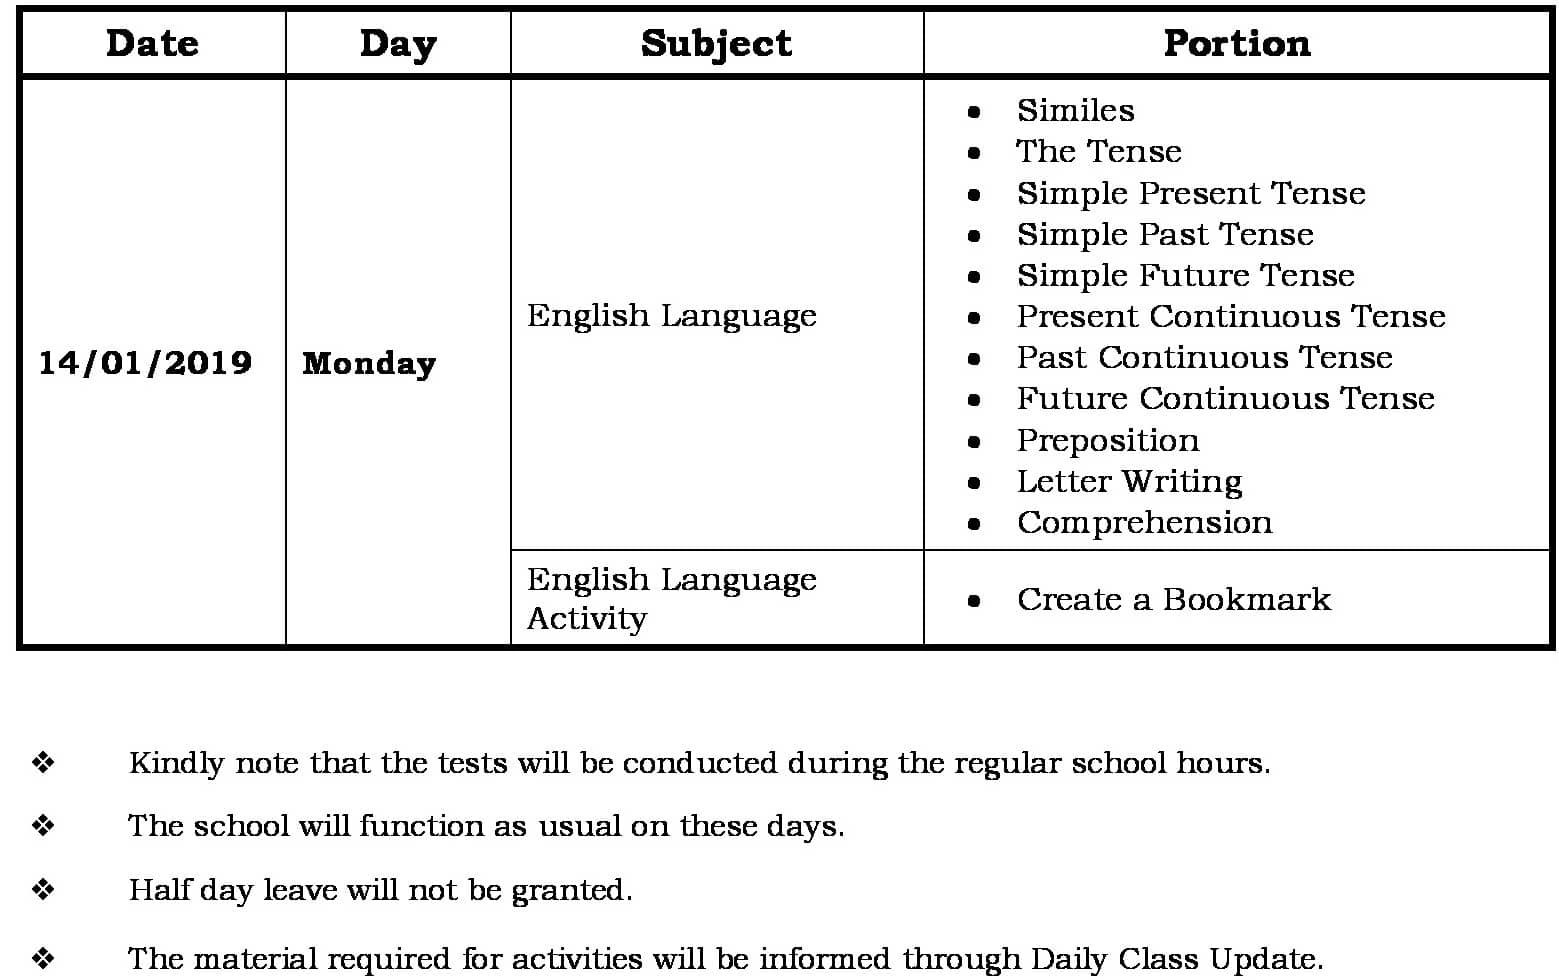 FA3 Portion and Schedule